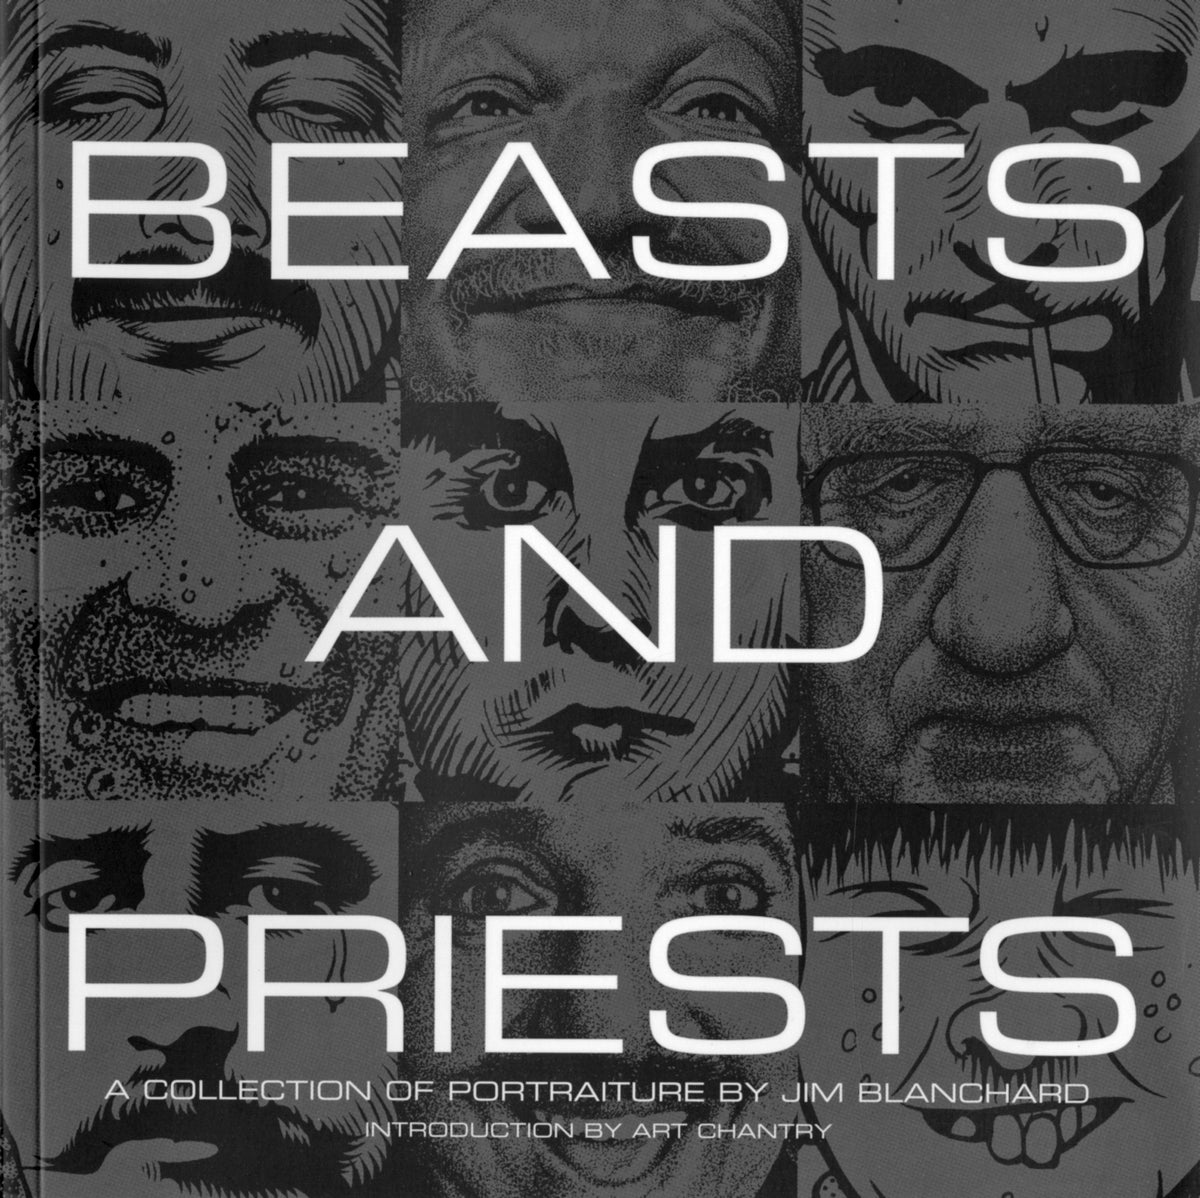 Image of BEASTS AND PRIESTS portraits art book